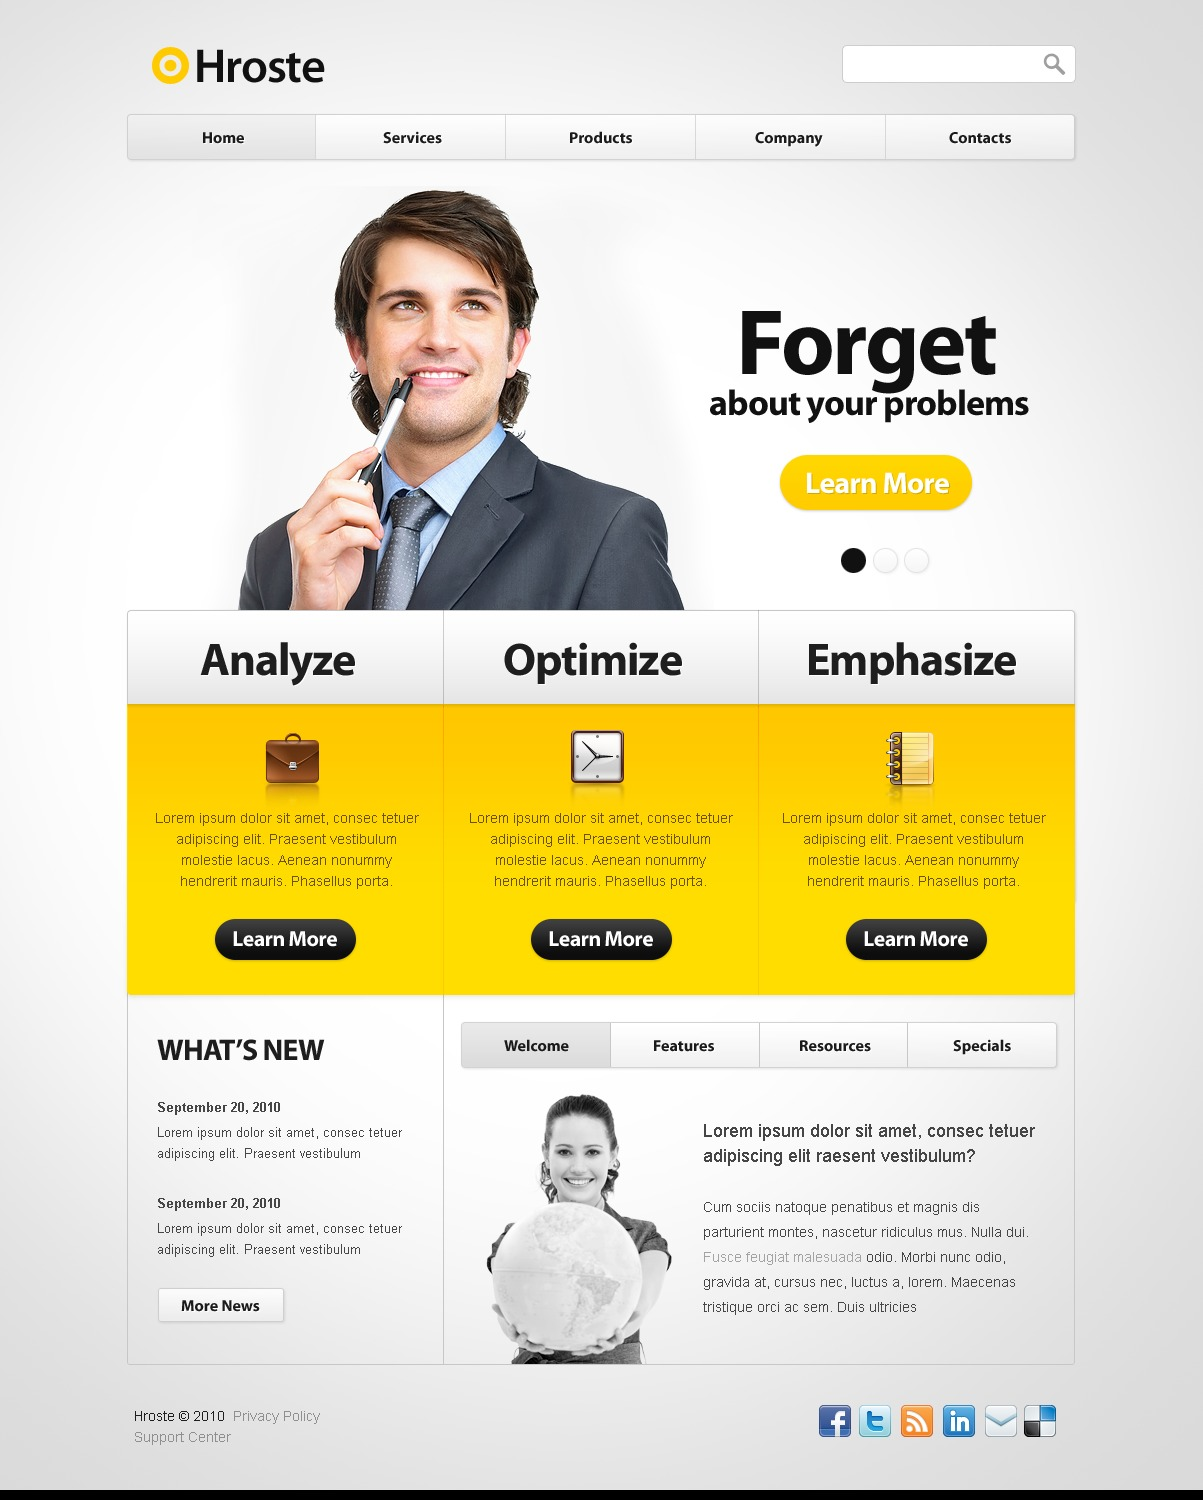 The Hroste Business Company PSD Design 54515, one of the best PSD templates of its kind (business, wide, jquery), also known as hroste business company PSD template, corporate solutions PSD template, innovations PSD template, contacts PSD template, service PSD template, support PSD template, information dealer PSD template, stocks PSD template, team PSD template, success PSD template, money PSD template, marketing PSD template, director PSD template, manager PSD template, analytics PSD template, planning PSD template, limited PSD template, office PSD template, sales and related with hroste business company, corporate solutions, innovations, contacts, service, support, information dealer, stocks, team, success, money, marketing, director, manager, analytics, planning, limited, office, sales, etc.